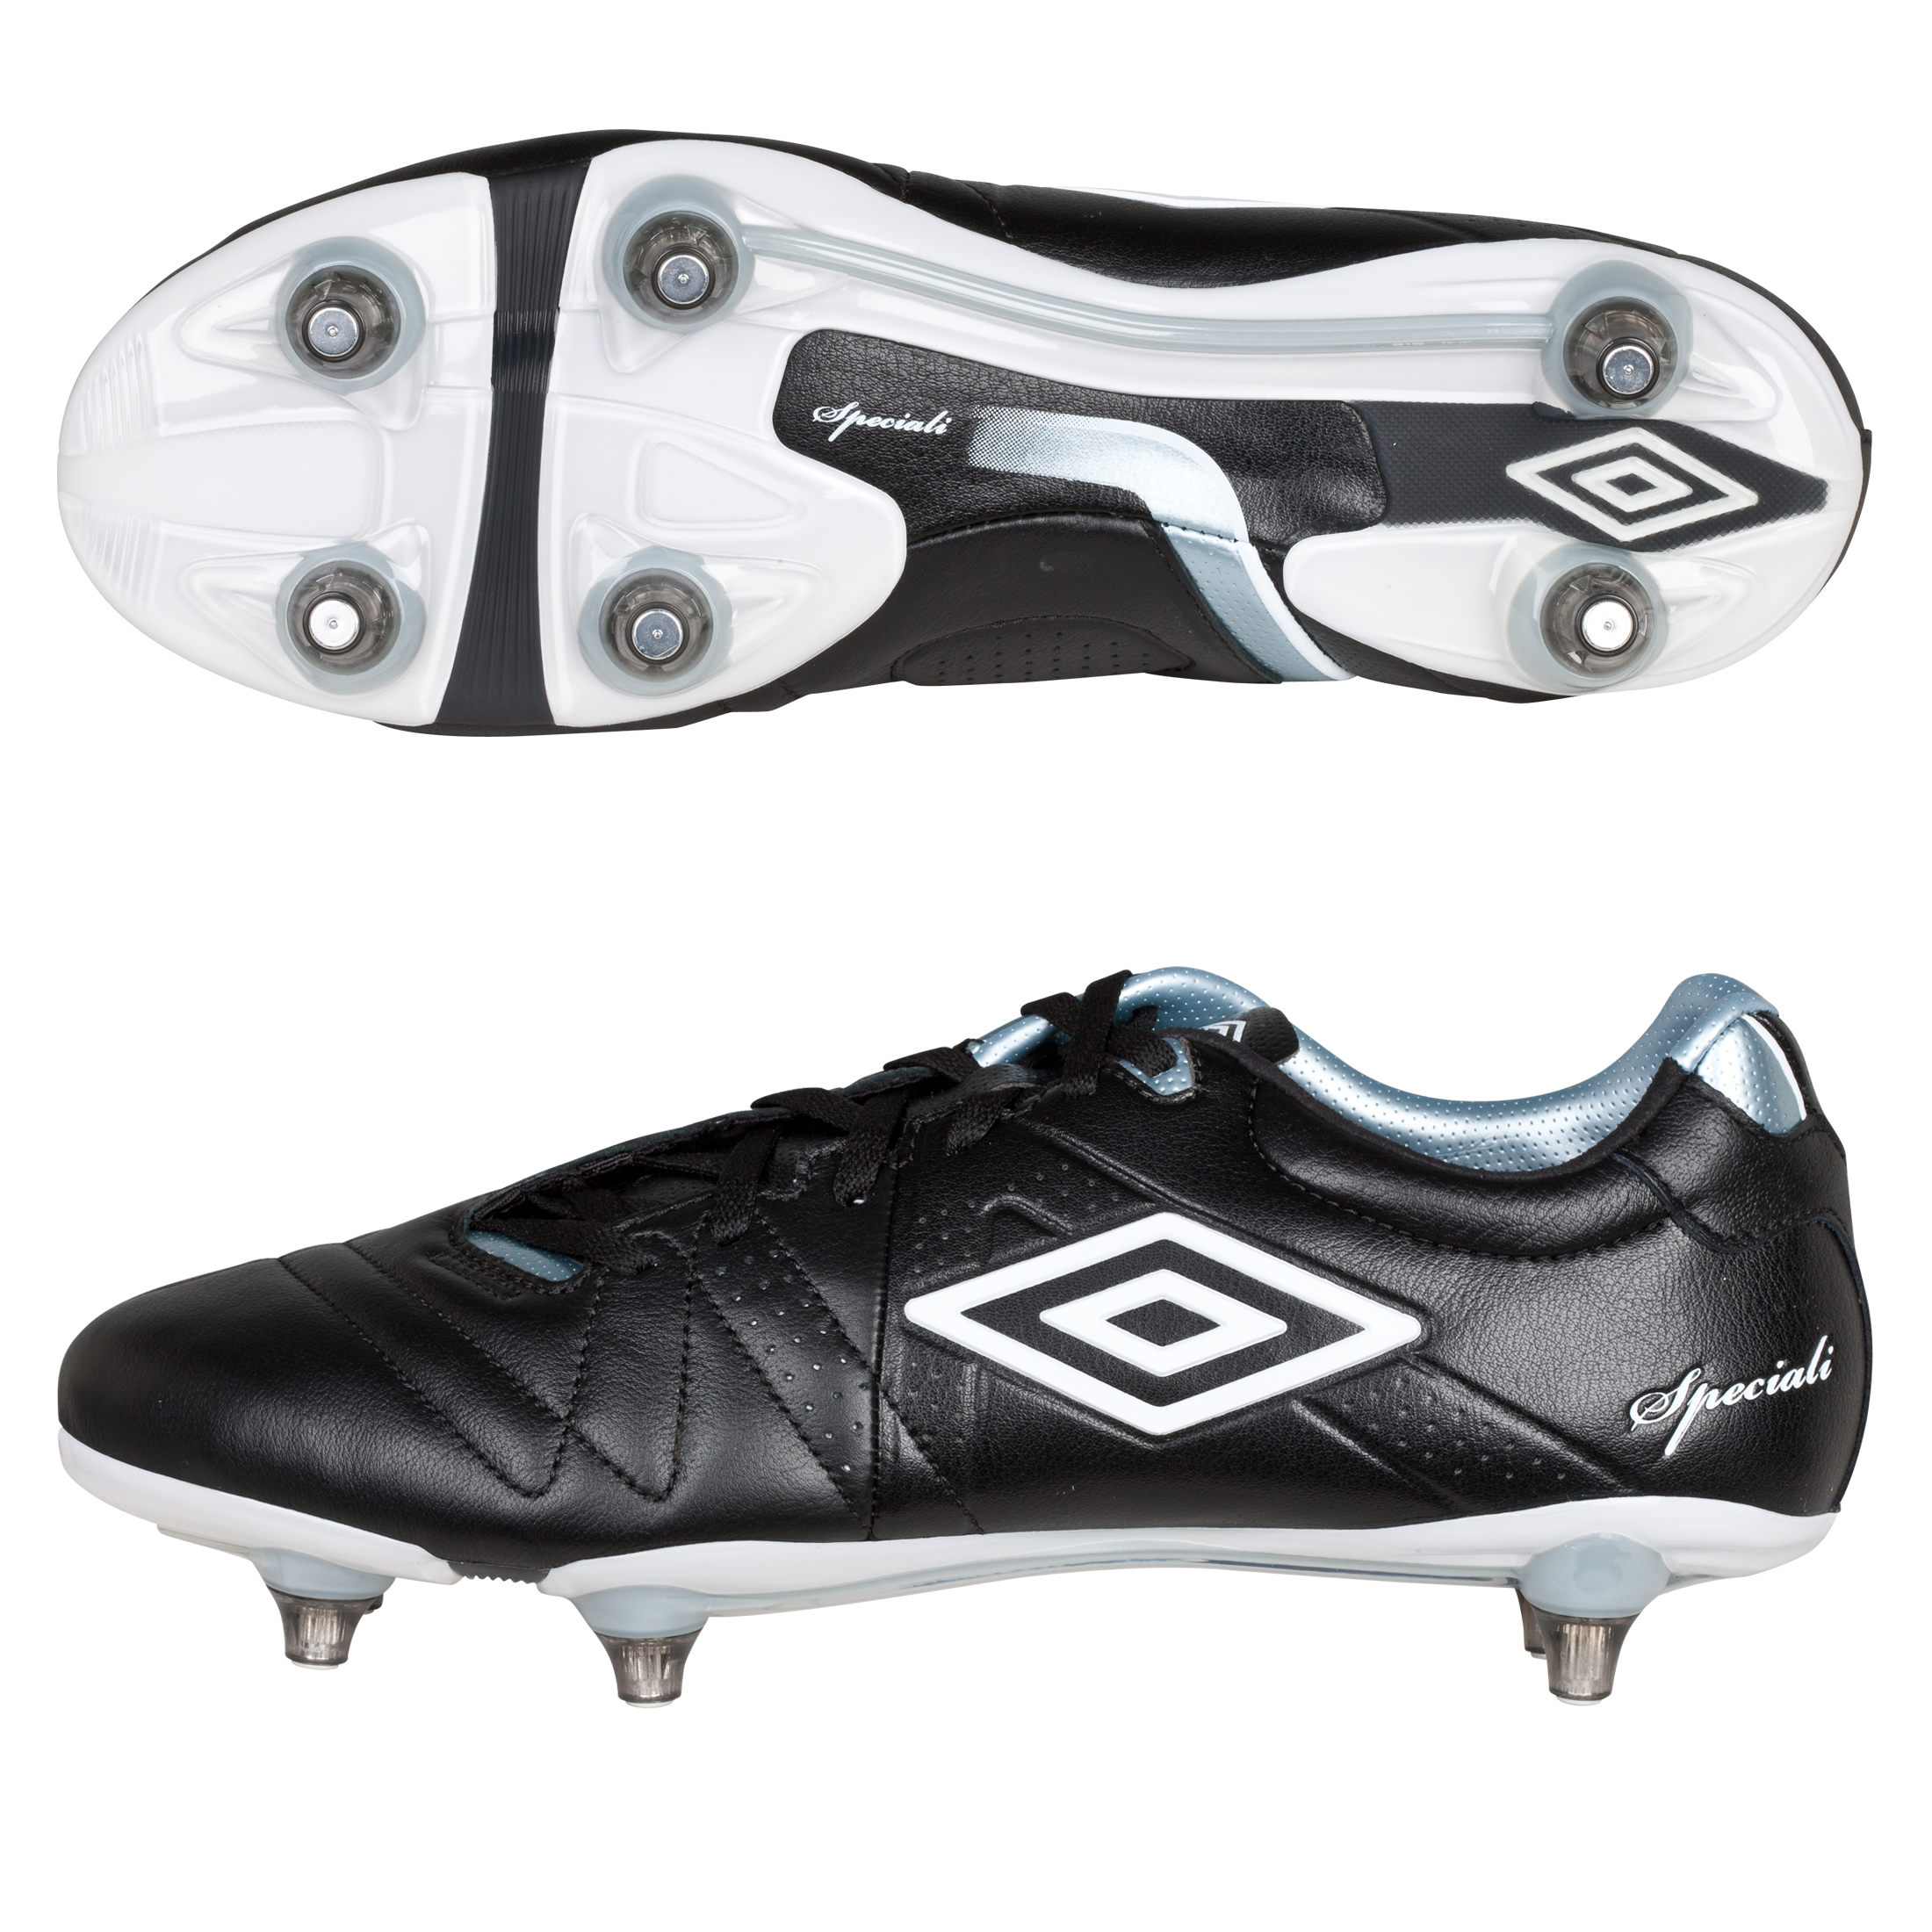 Speciali 3 Pro SG Black/White/Chrome